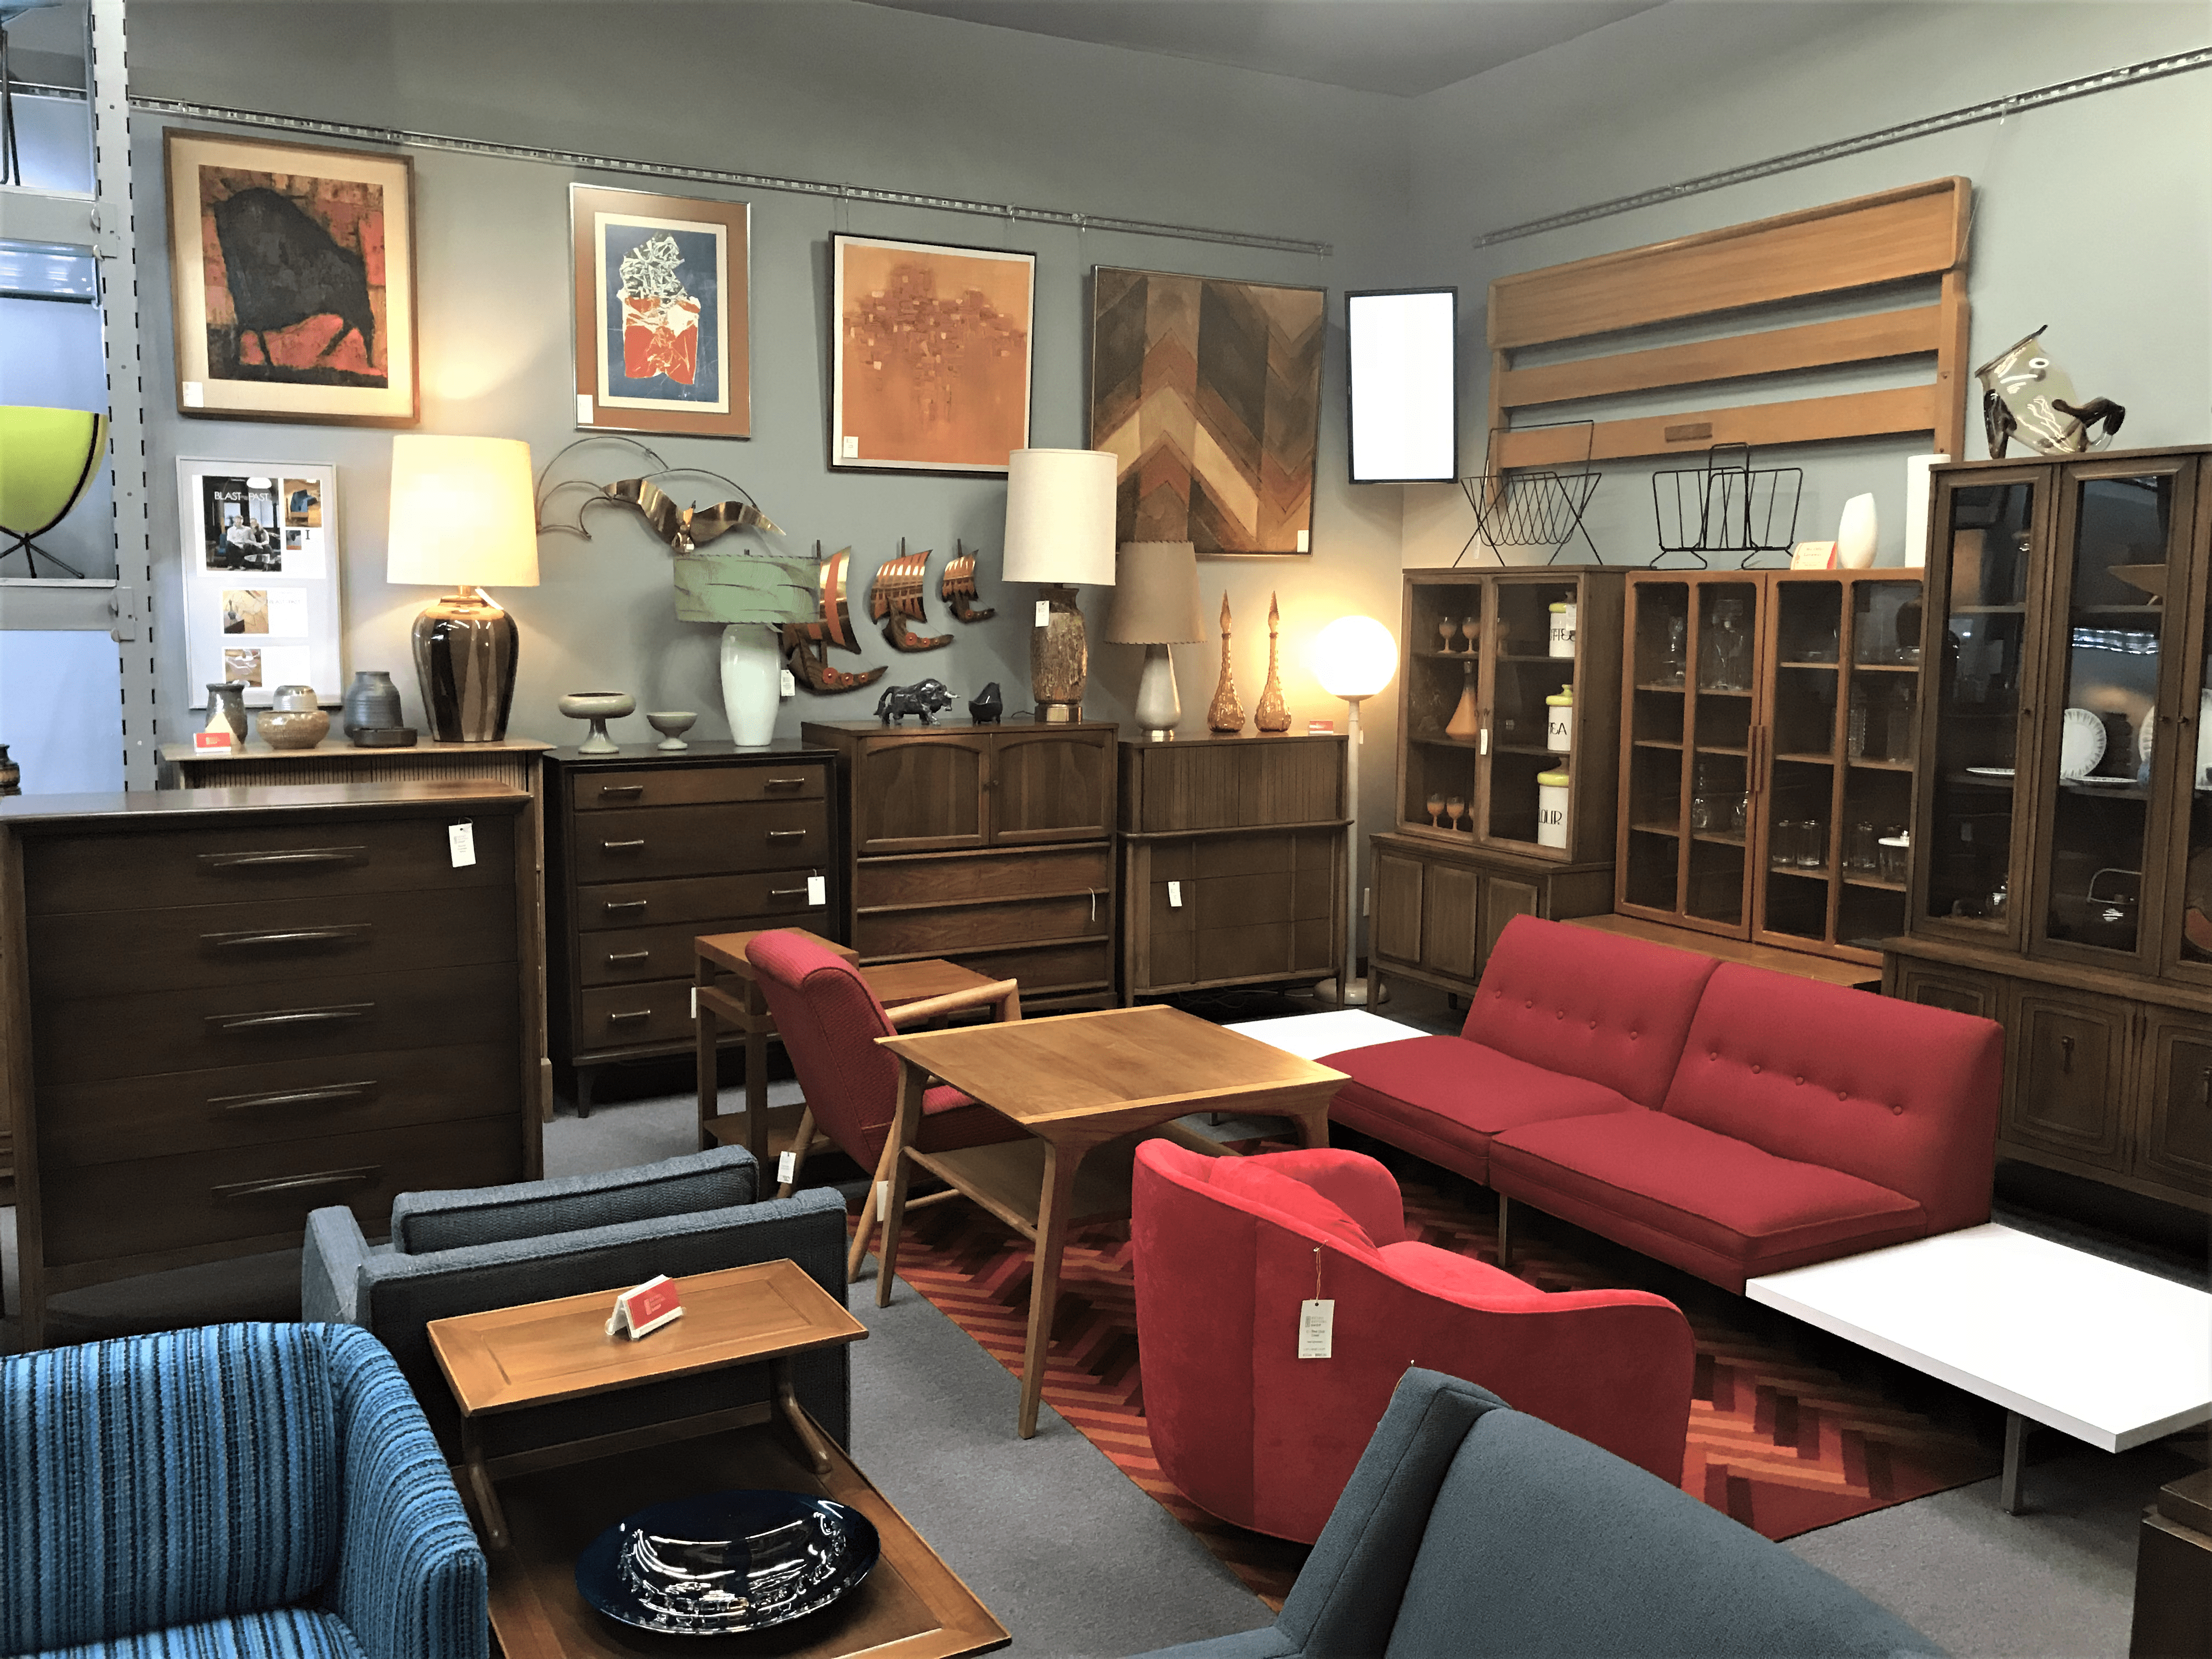 Retro Revival Shop Has A Huge Selection Of Mid Century Modern